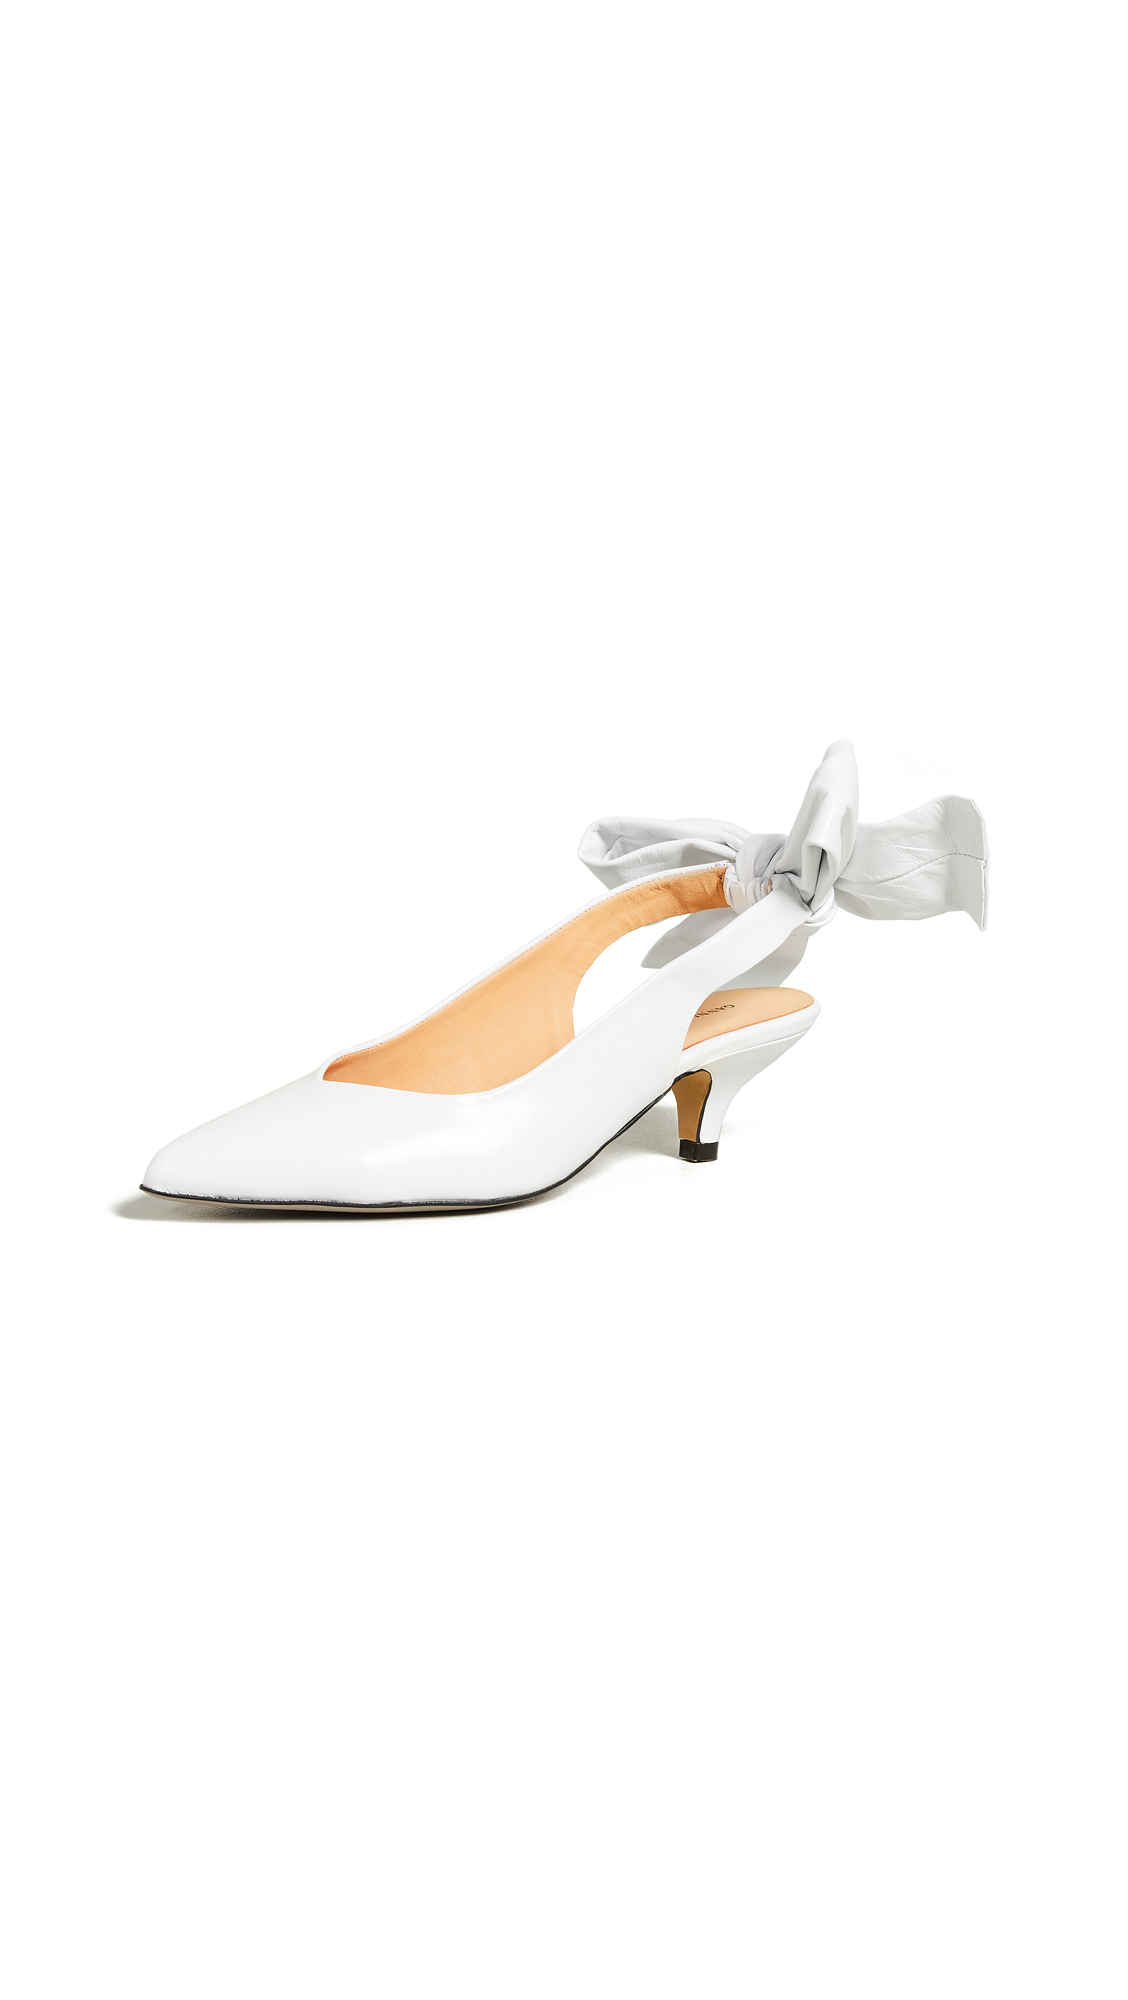 Ganni Sabine Slingback Pumps - Bright White